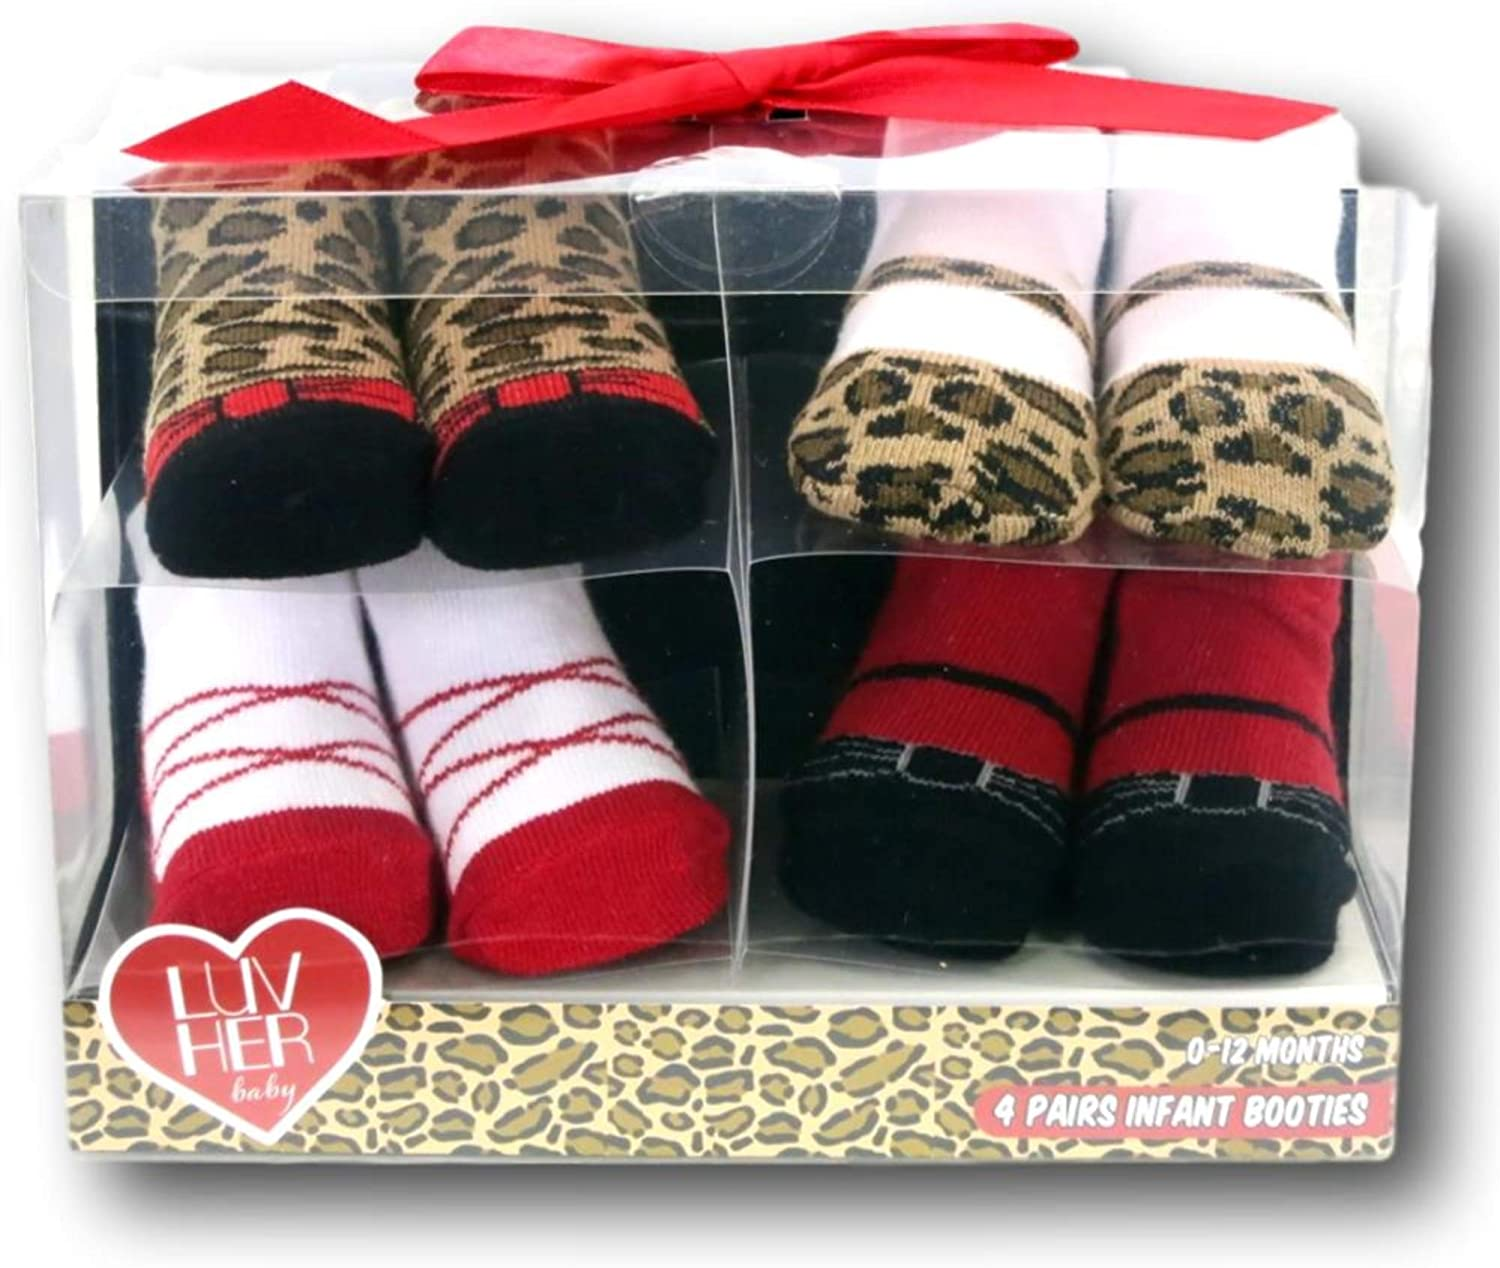 4 Pairs Infant Girls Leopard Animal Print Baby Booties - 0 to 12 Months